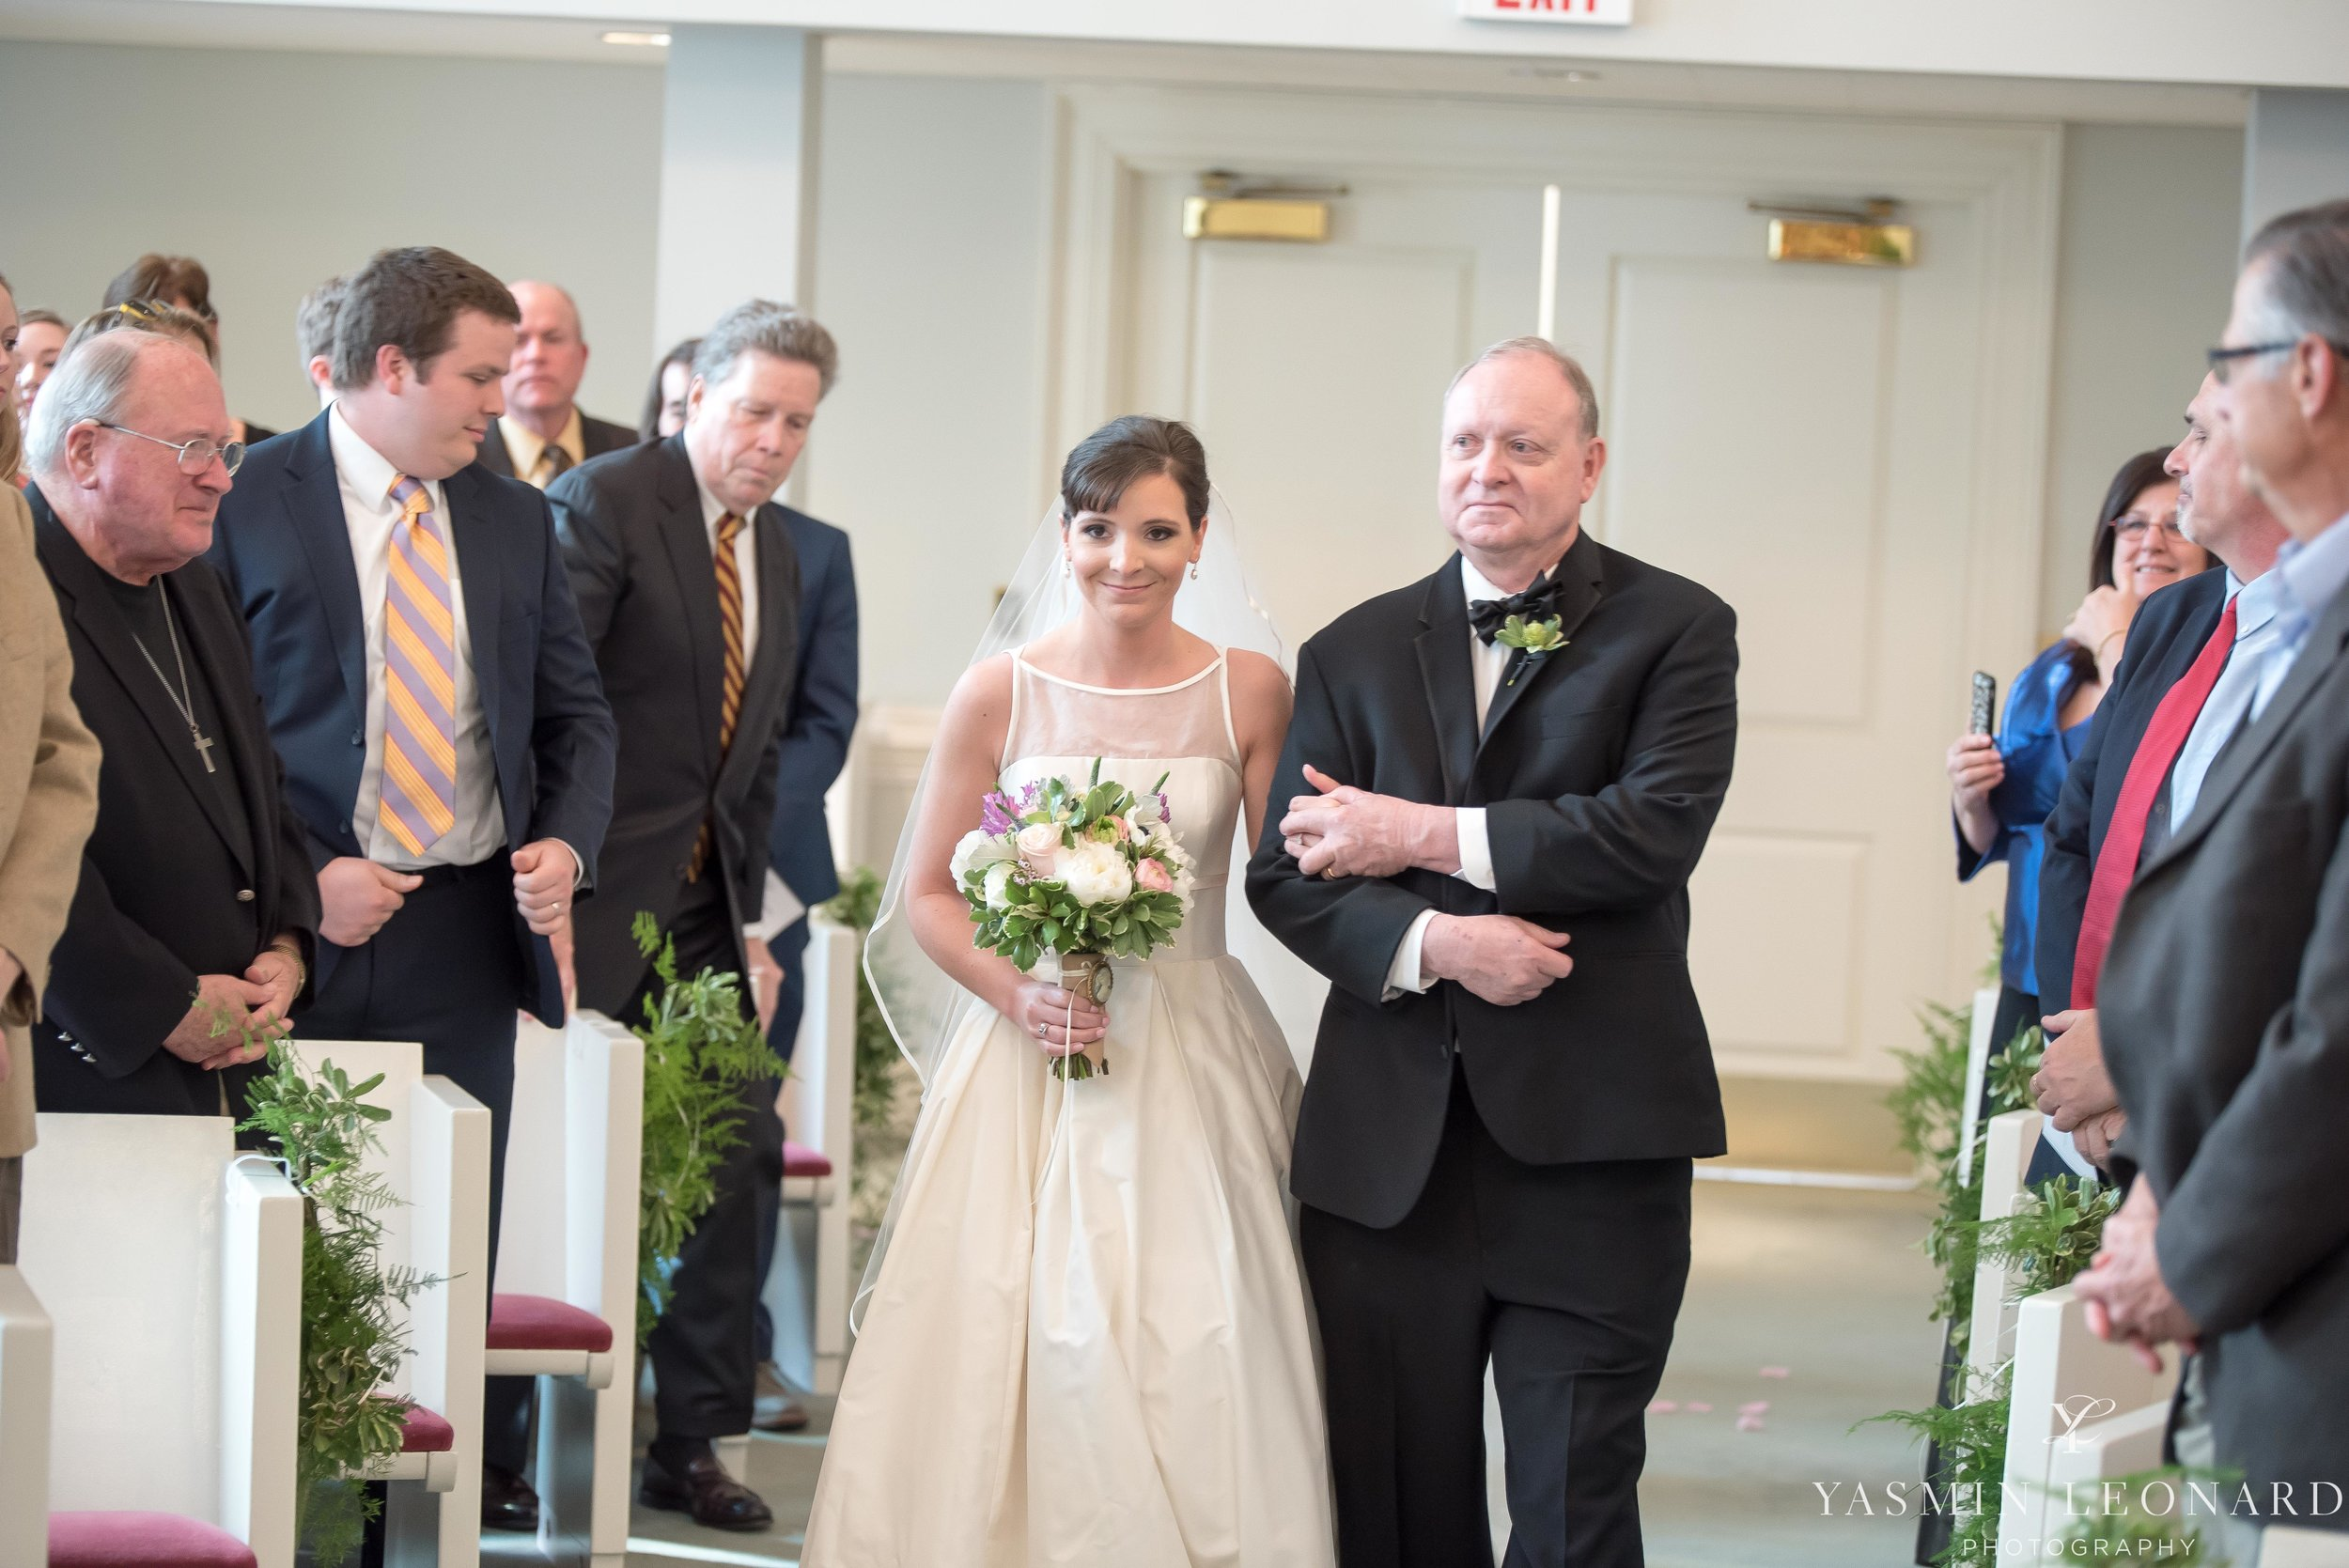 JH ADAMS INN - HIGH POINT UNIVERSITY CHAPEL WEDDING - HPU CHAPEL - HIGH POINT WEDDINGS - NC WEDDING PHOTOGRAPHER - YASMIN LEONARD PHOTOGRAPHY - HIGH POINT NC - HIGH POINT WEDDINGS -23.jpg